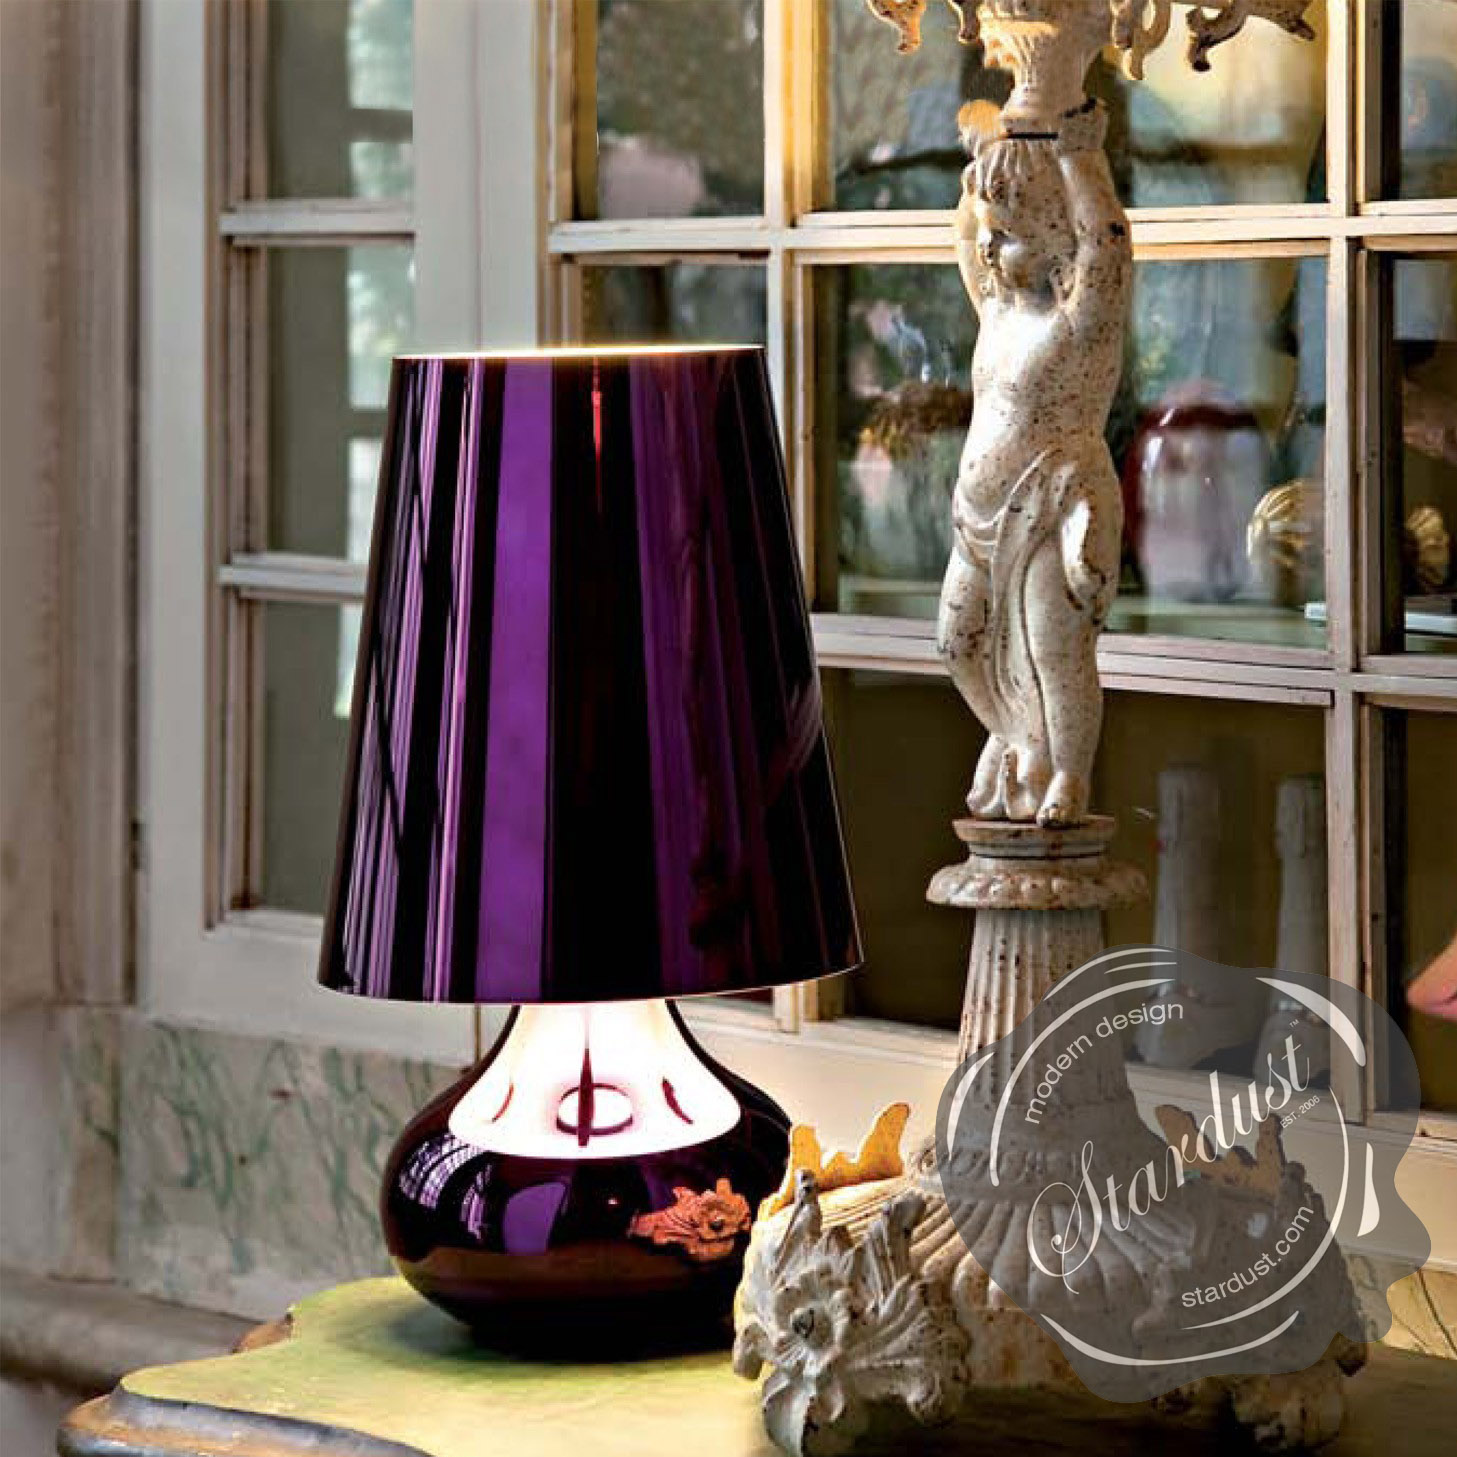 Modern interior design cindy 16 12 h table lamp with empire cindy 16 12 h table lamp with empire shade by kartell geotapseo Choice Image